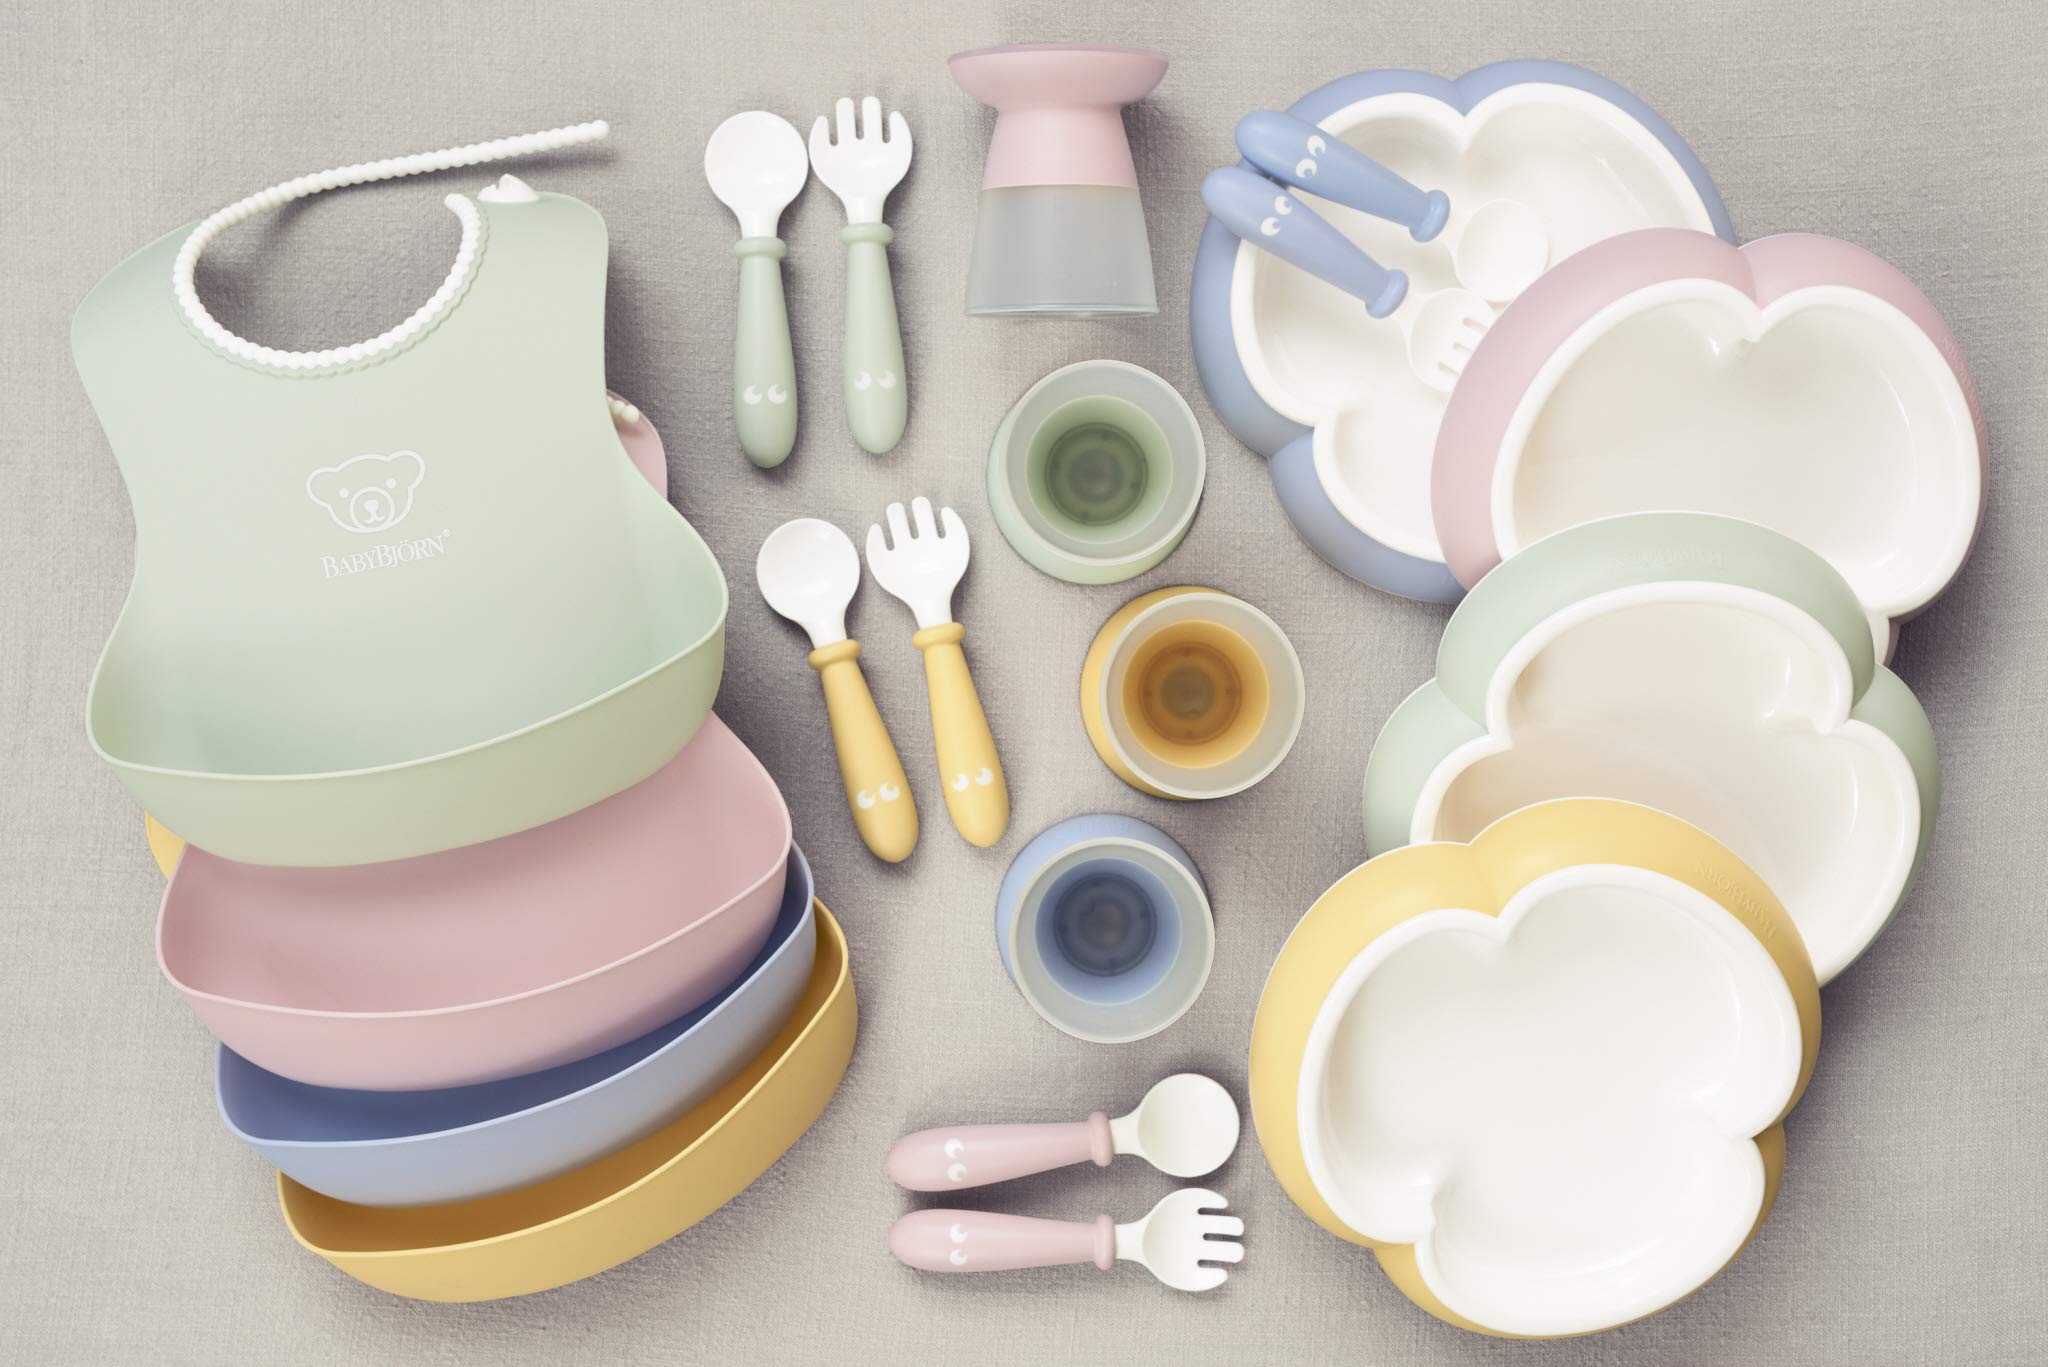 BABYBJORN Baby 2 Piece Plate, Spoon and Fork, Powder Blue by BabyBjörn (Image #4)